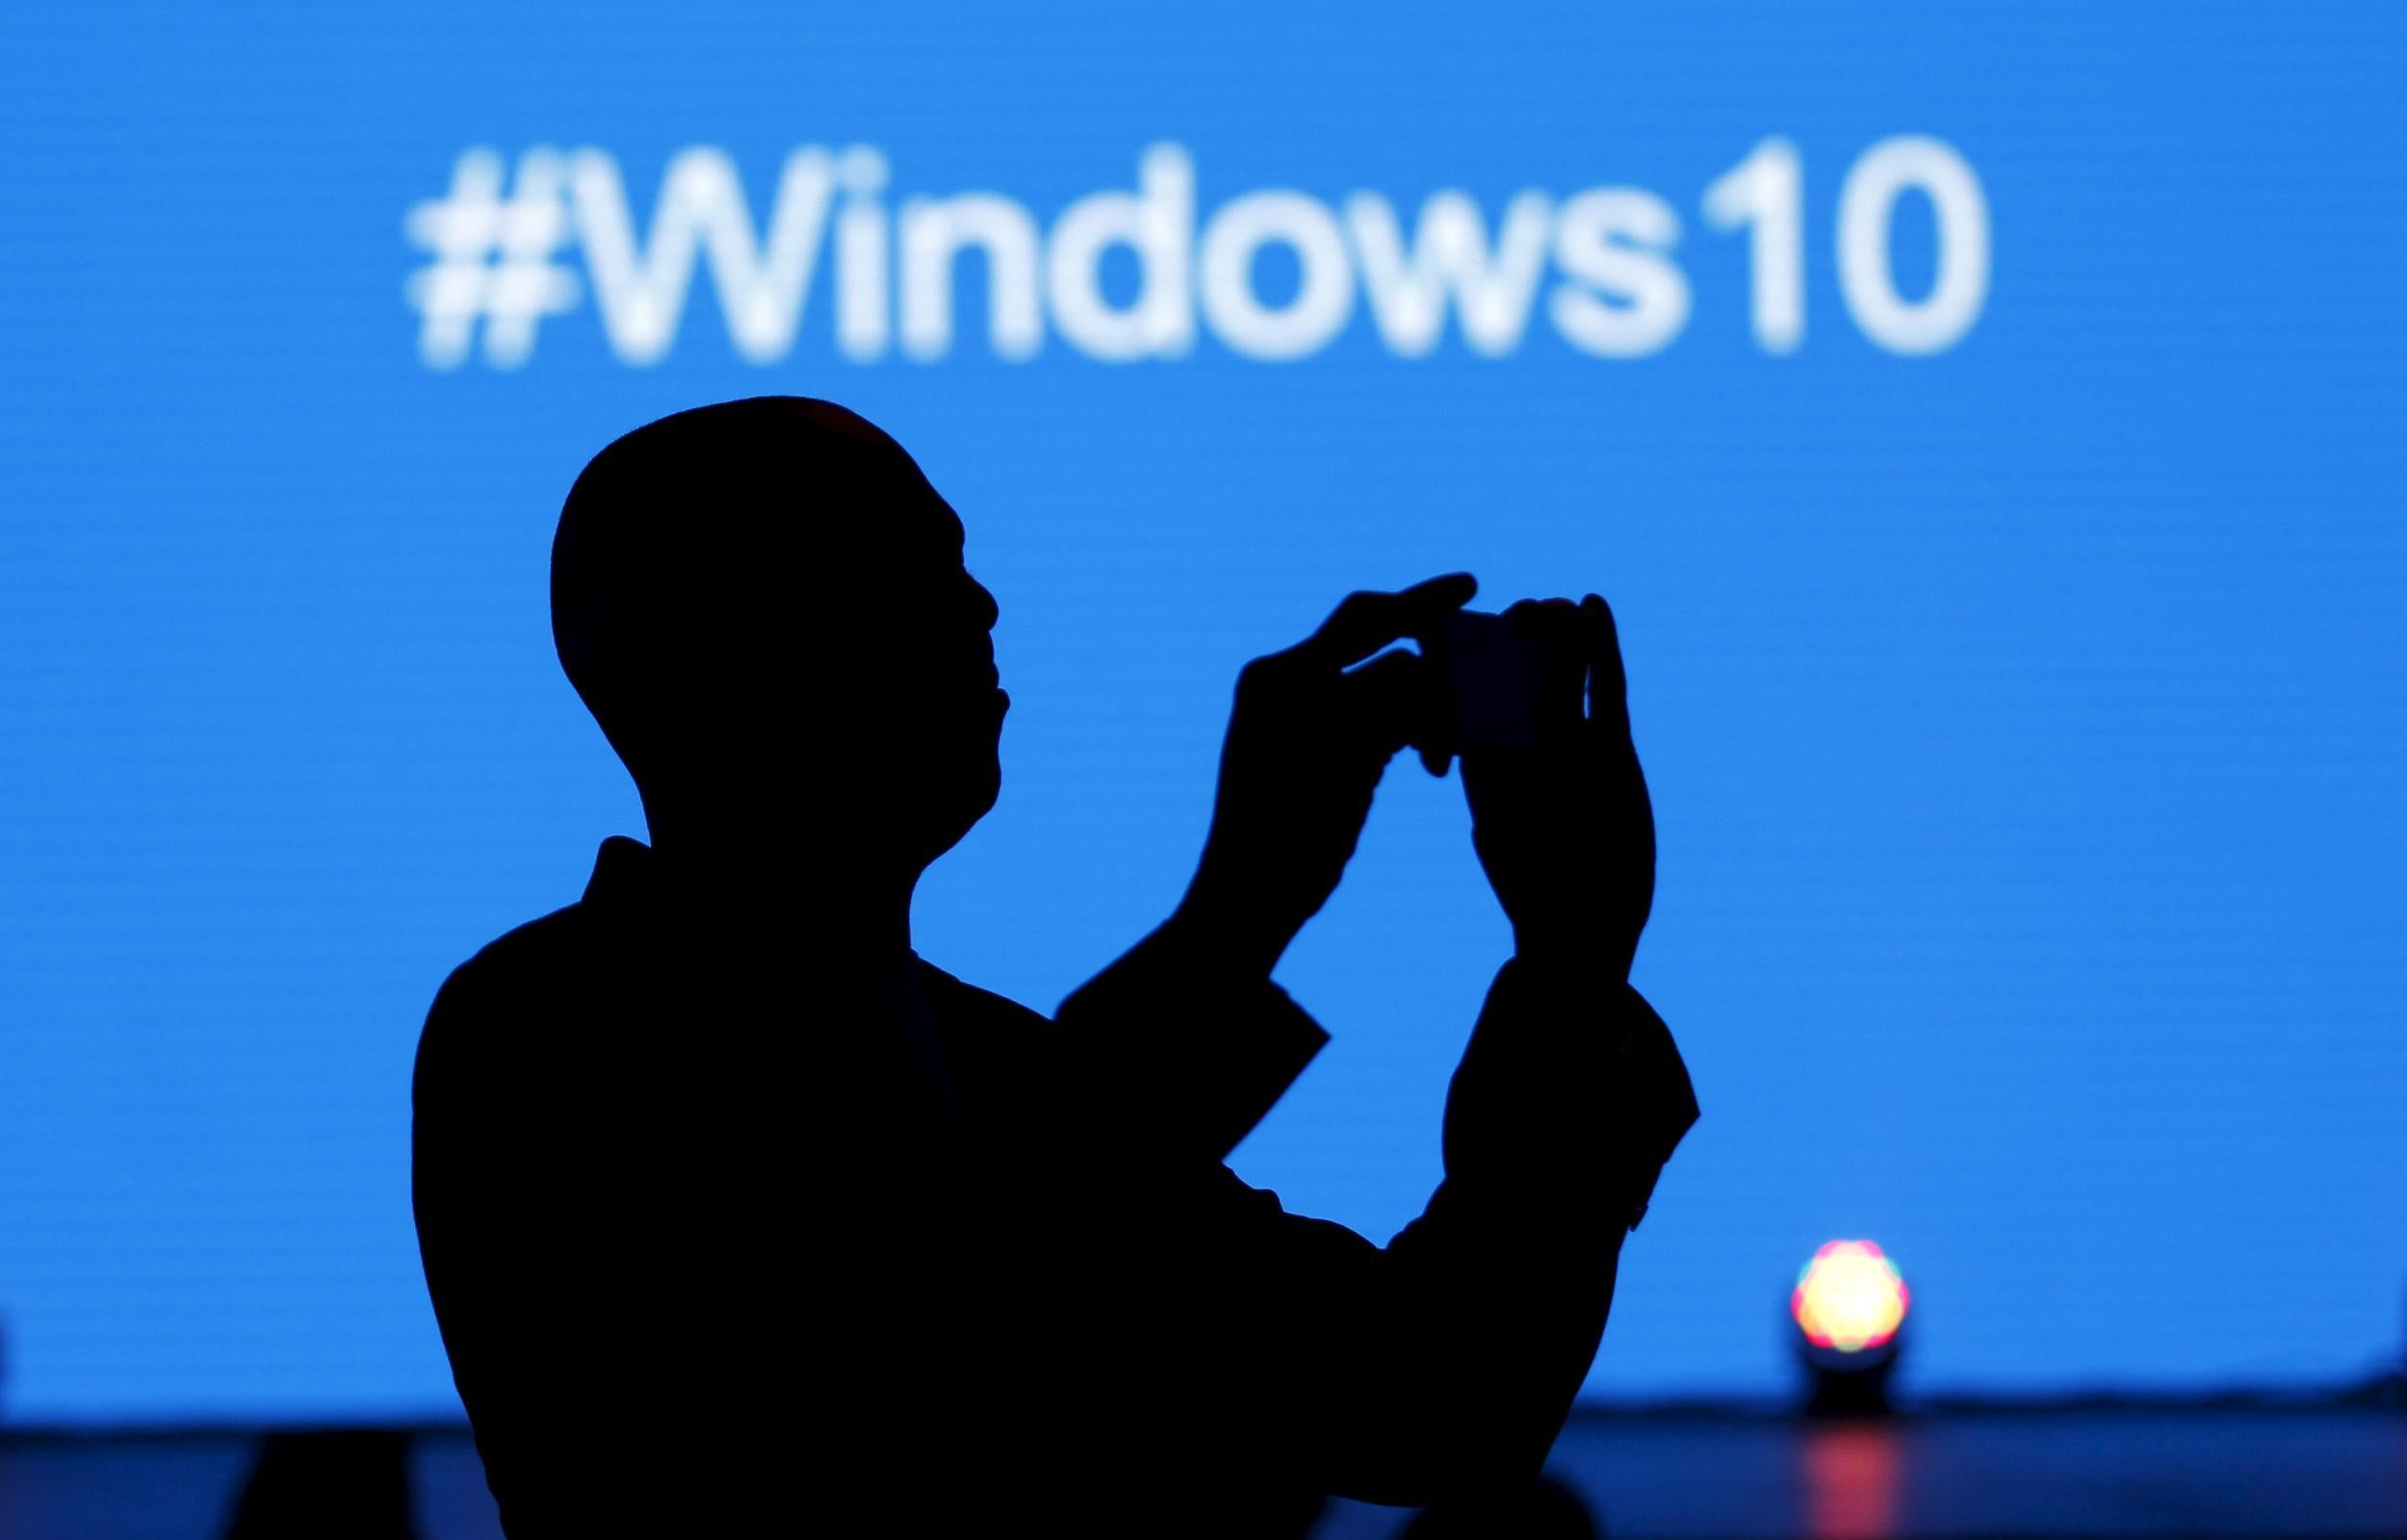 Windows 10 users need to buy new computers to access any new features